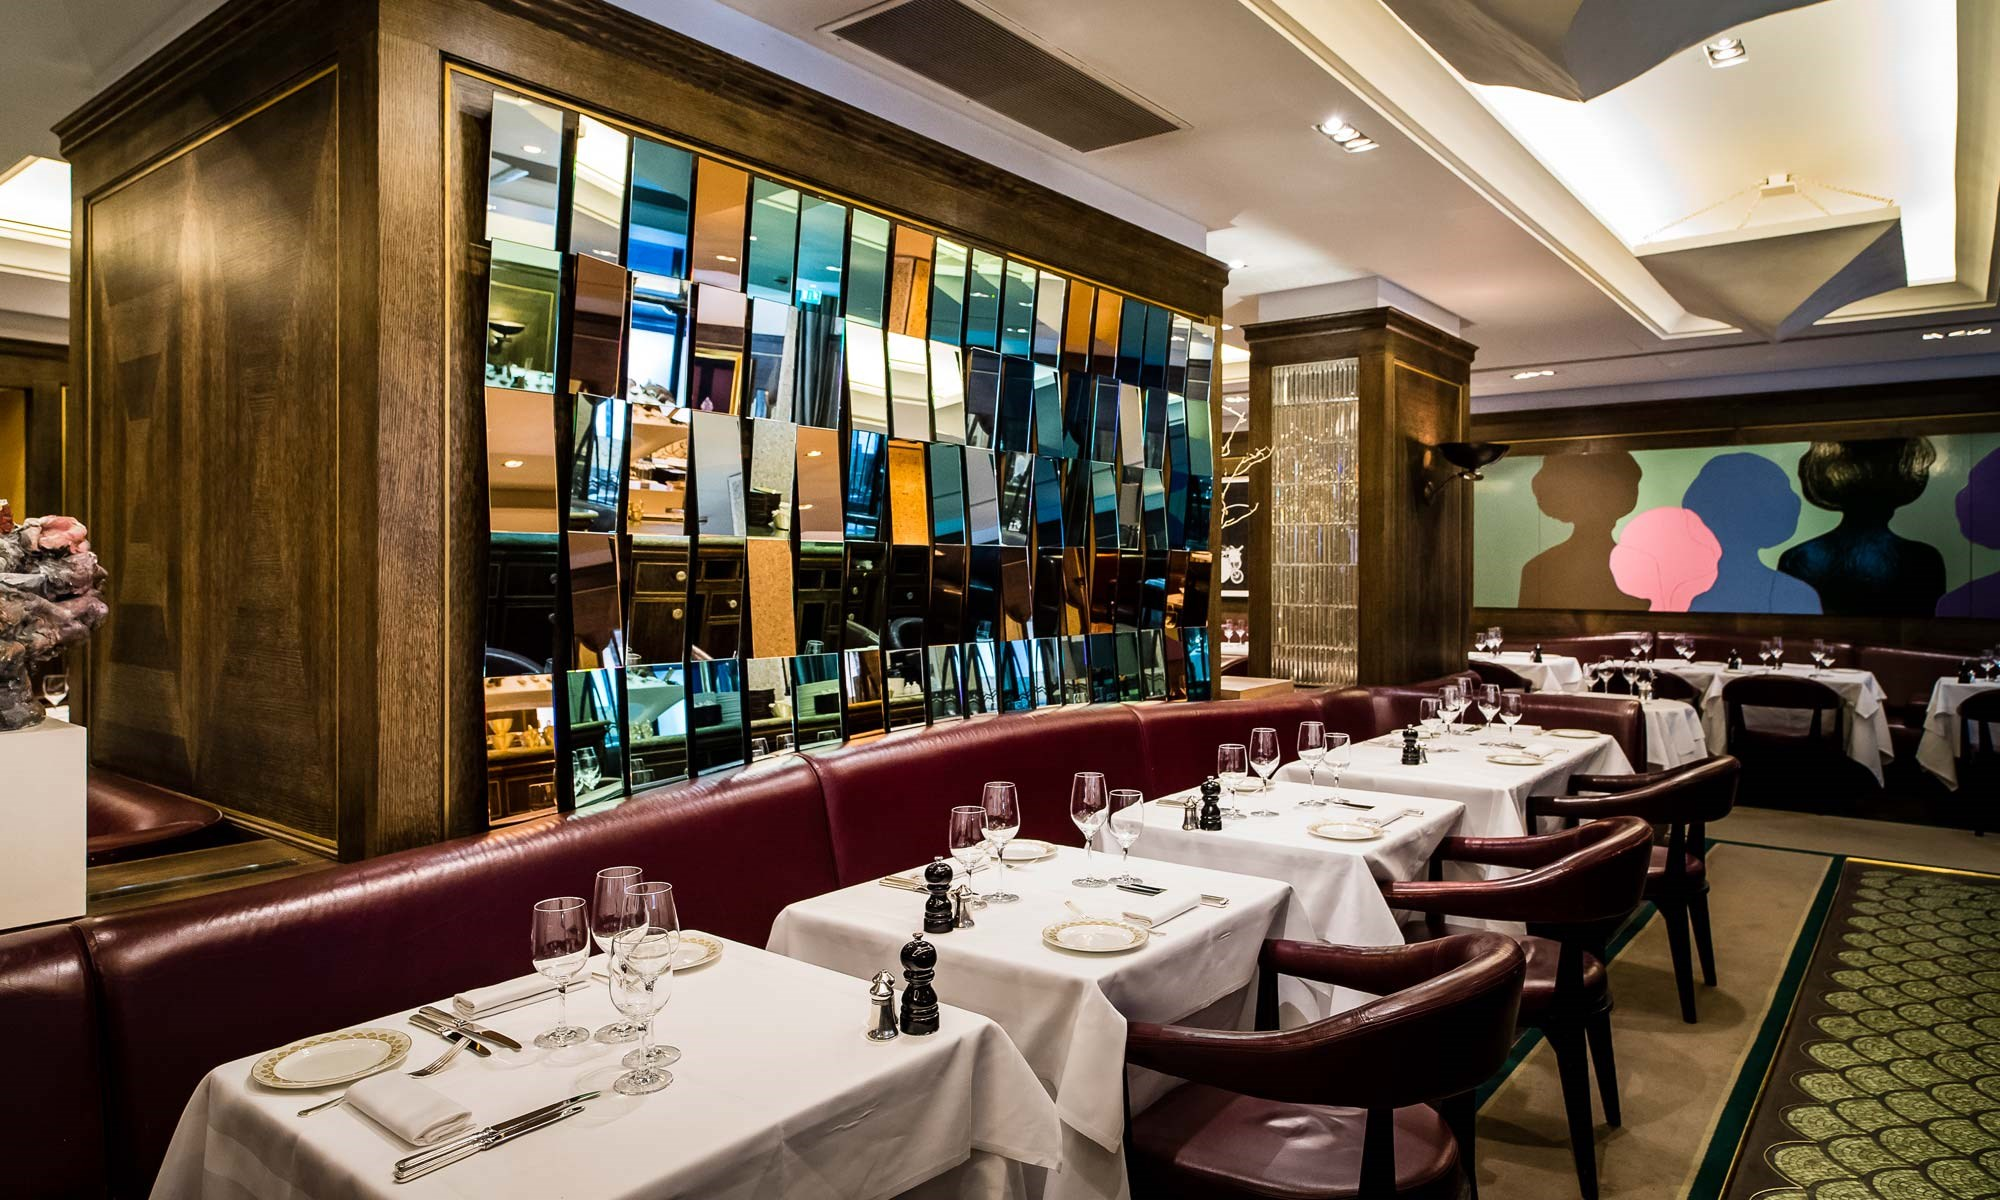 Dinner at Scott's in Mayfair, Seafood Restaurant in London